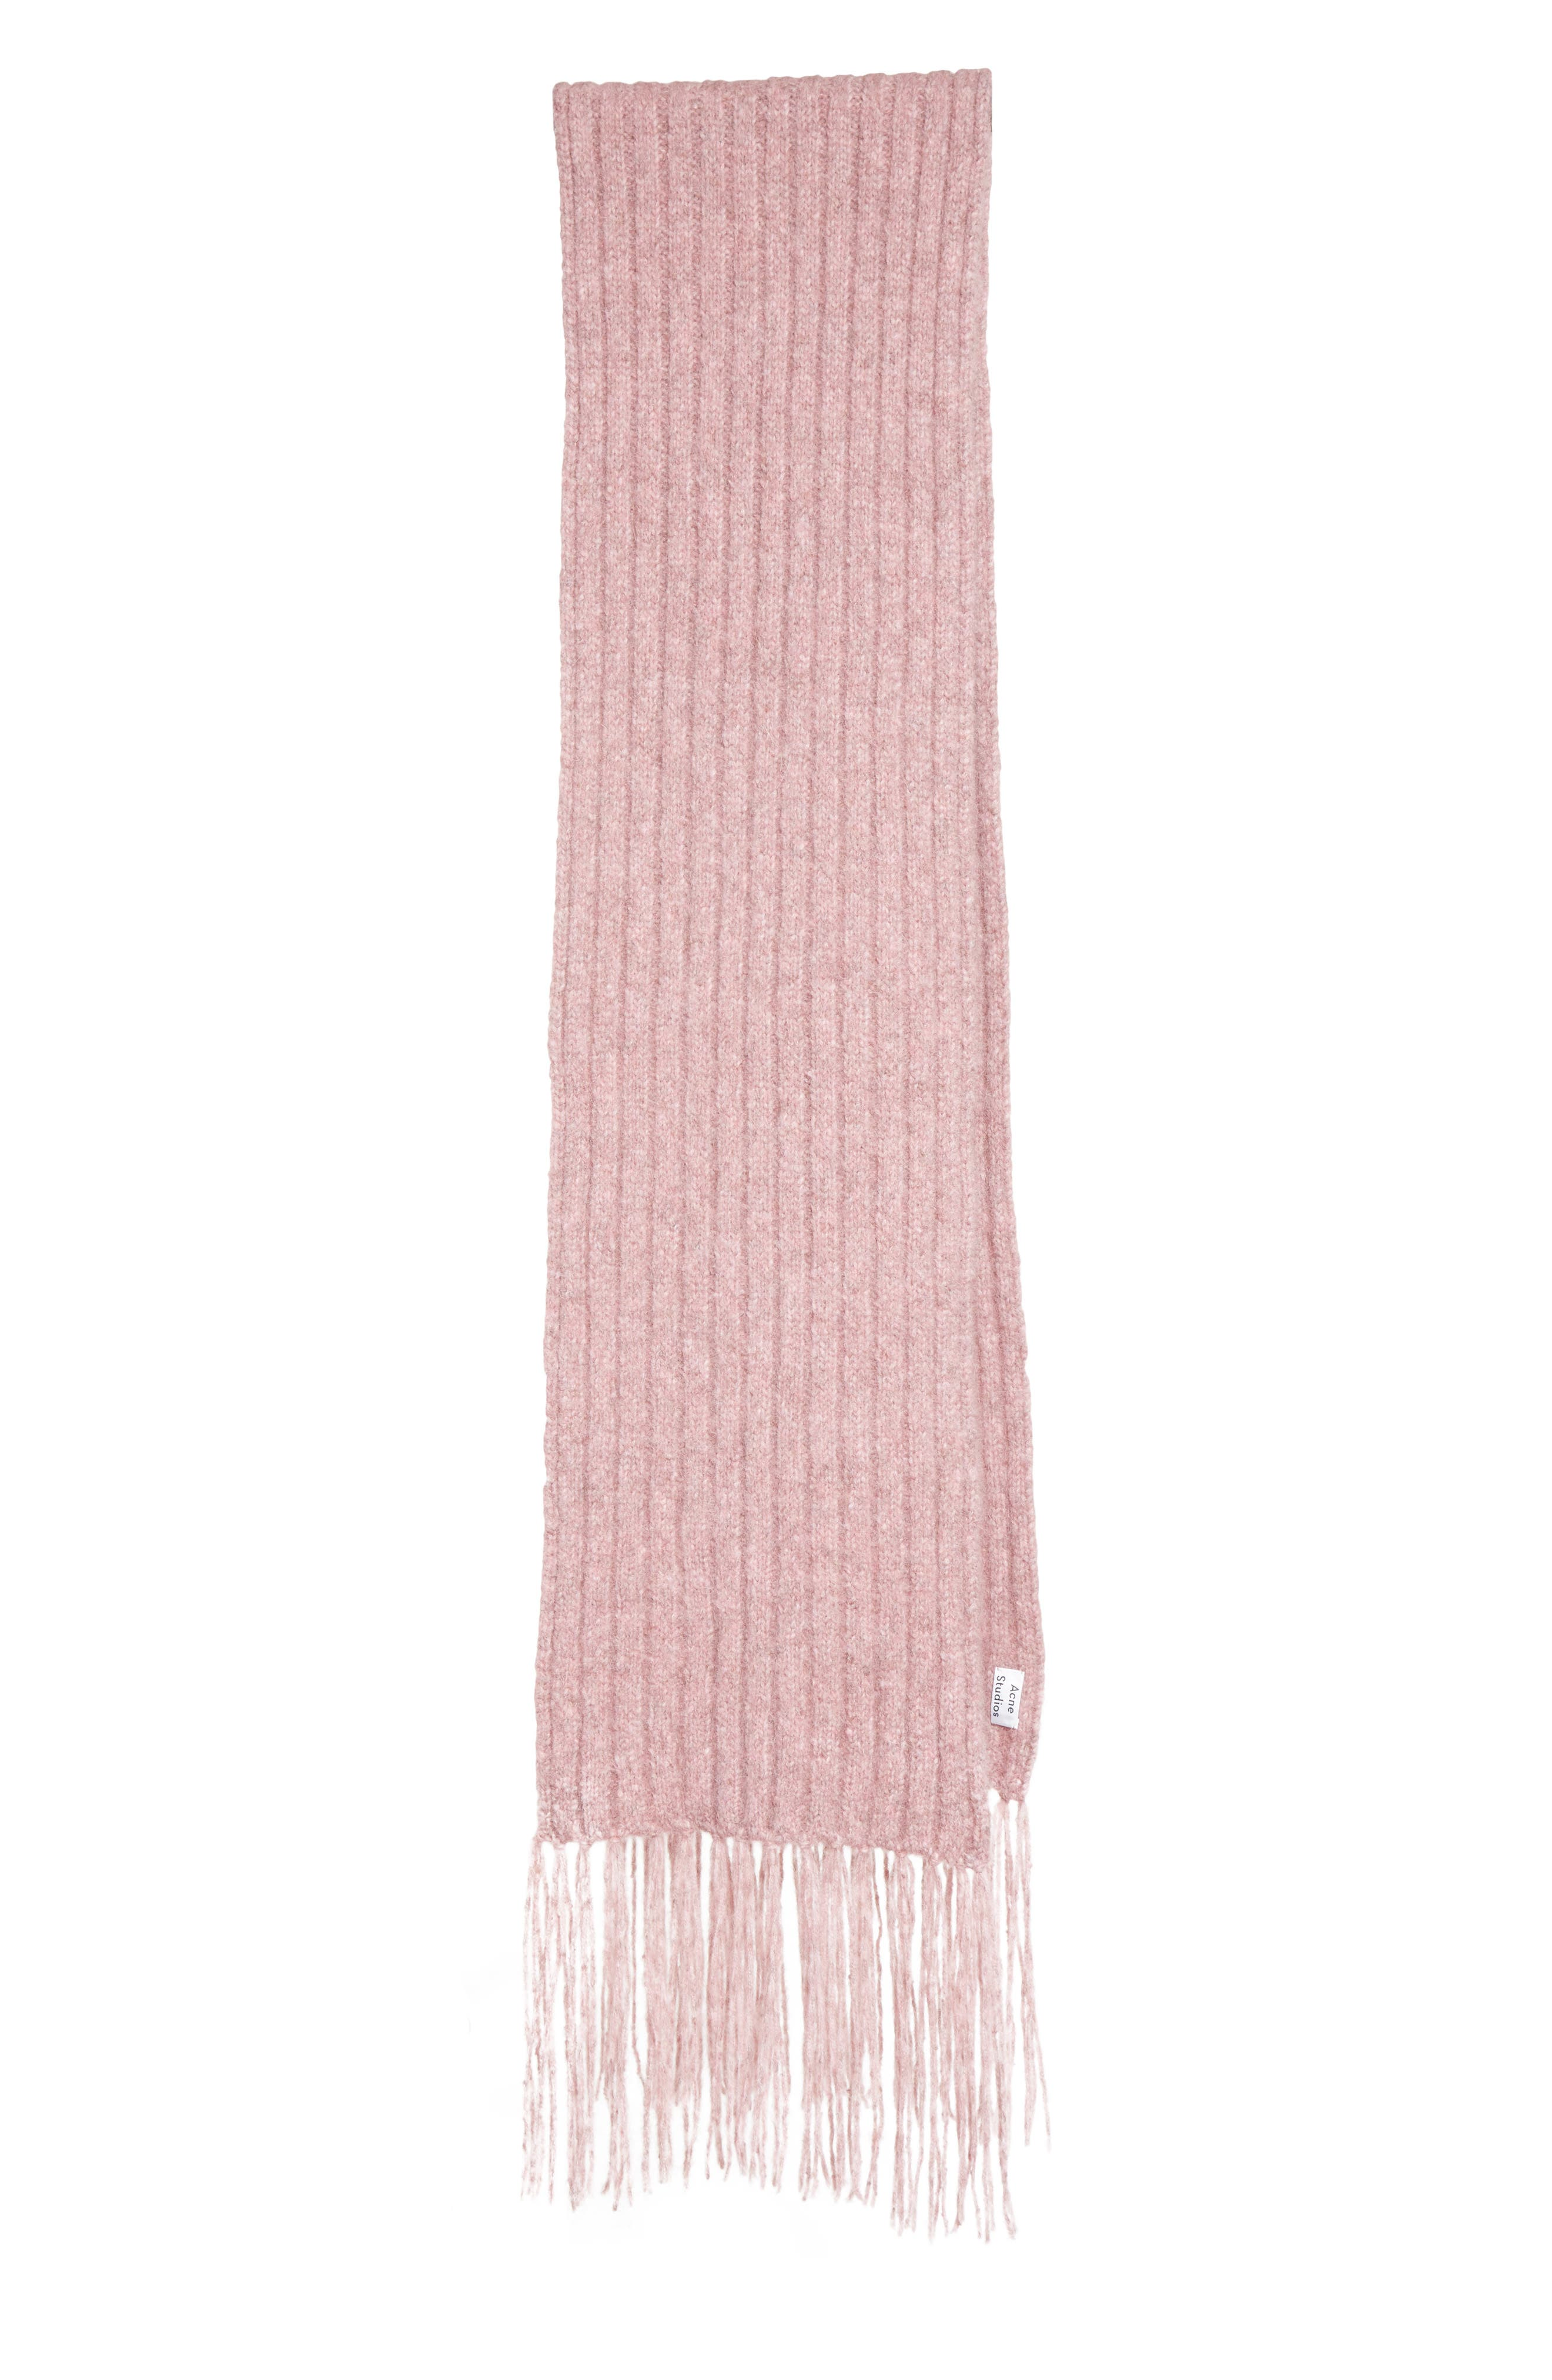 Fringed Alpaca Blend Scarf,                             Main thumbnail 1, color,                             Dusty Pink